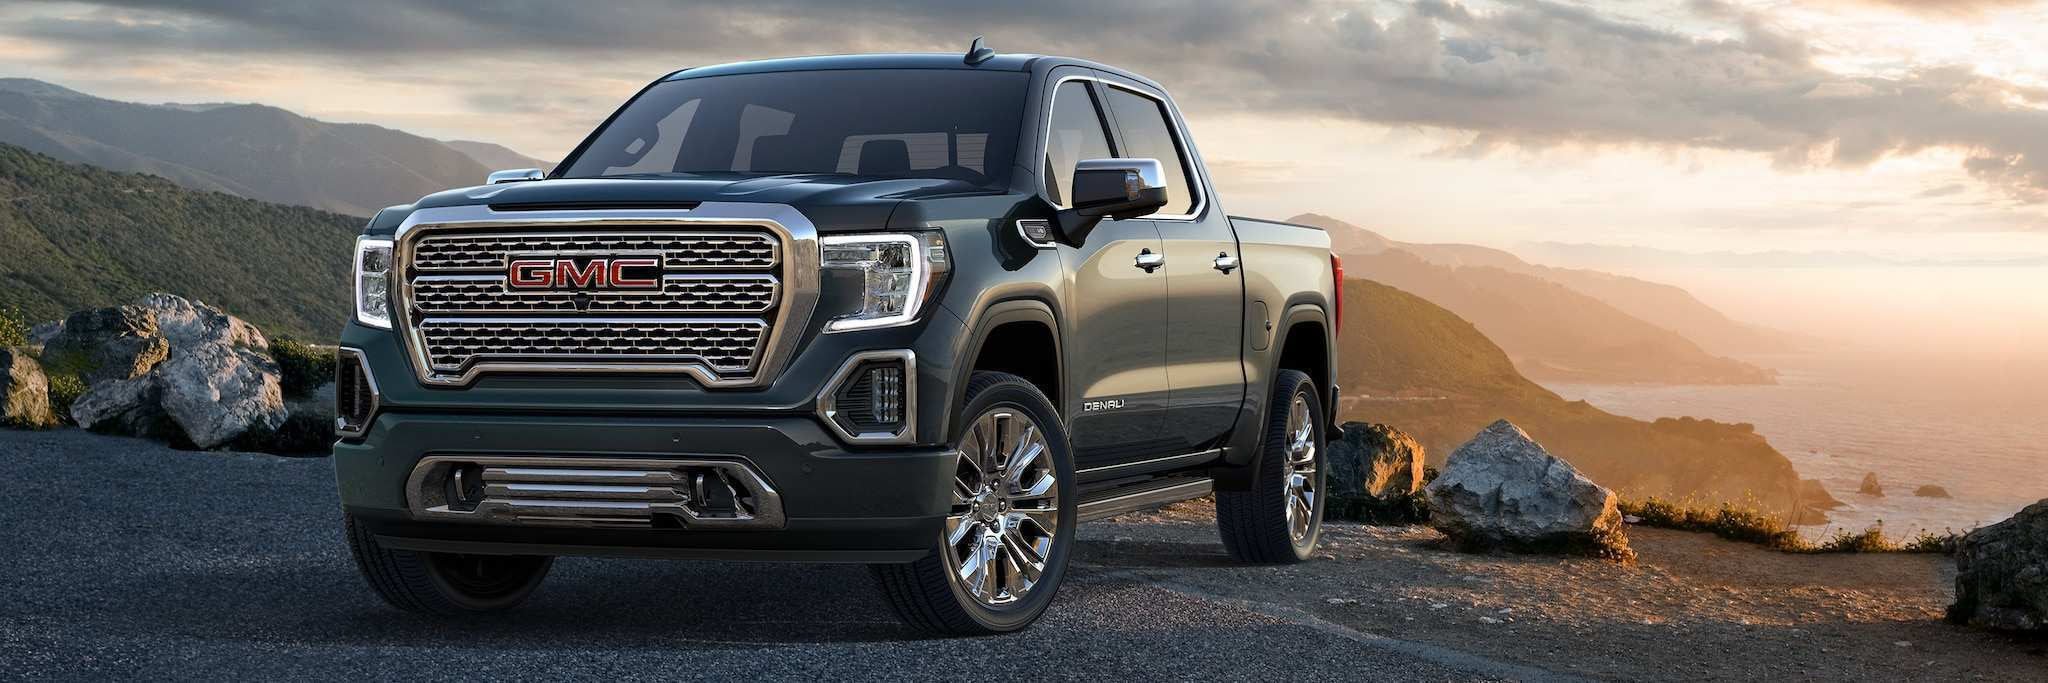 70 Best 2019 Gmc 1500 Specs Research New